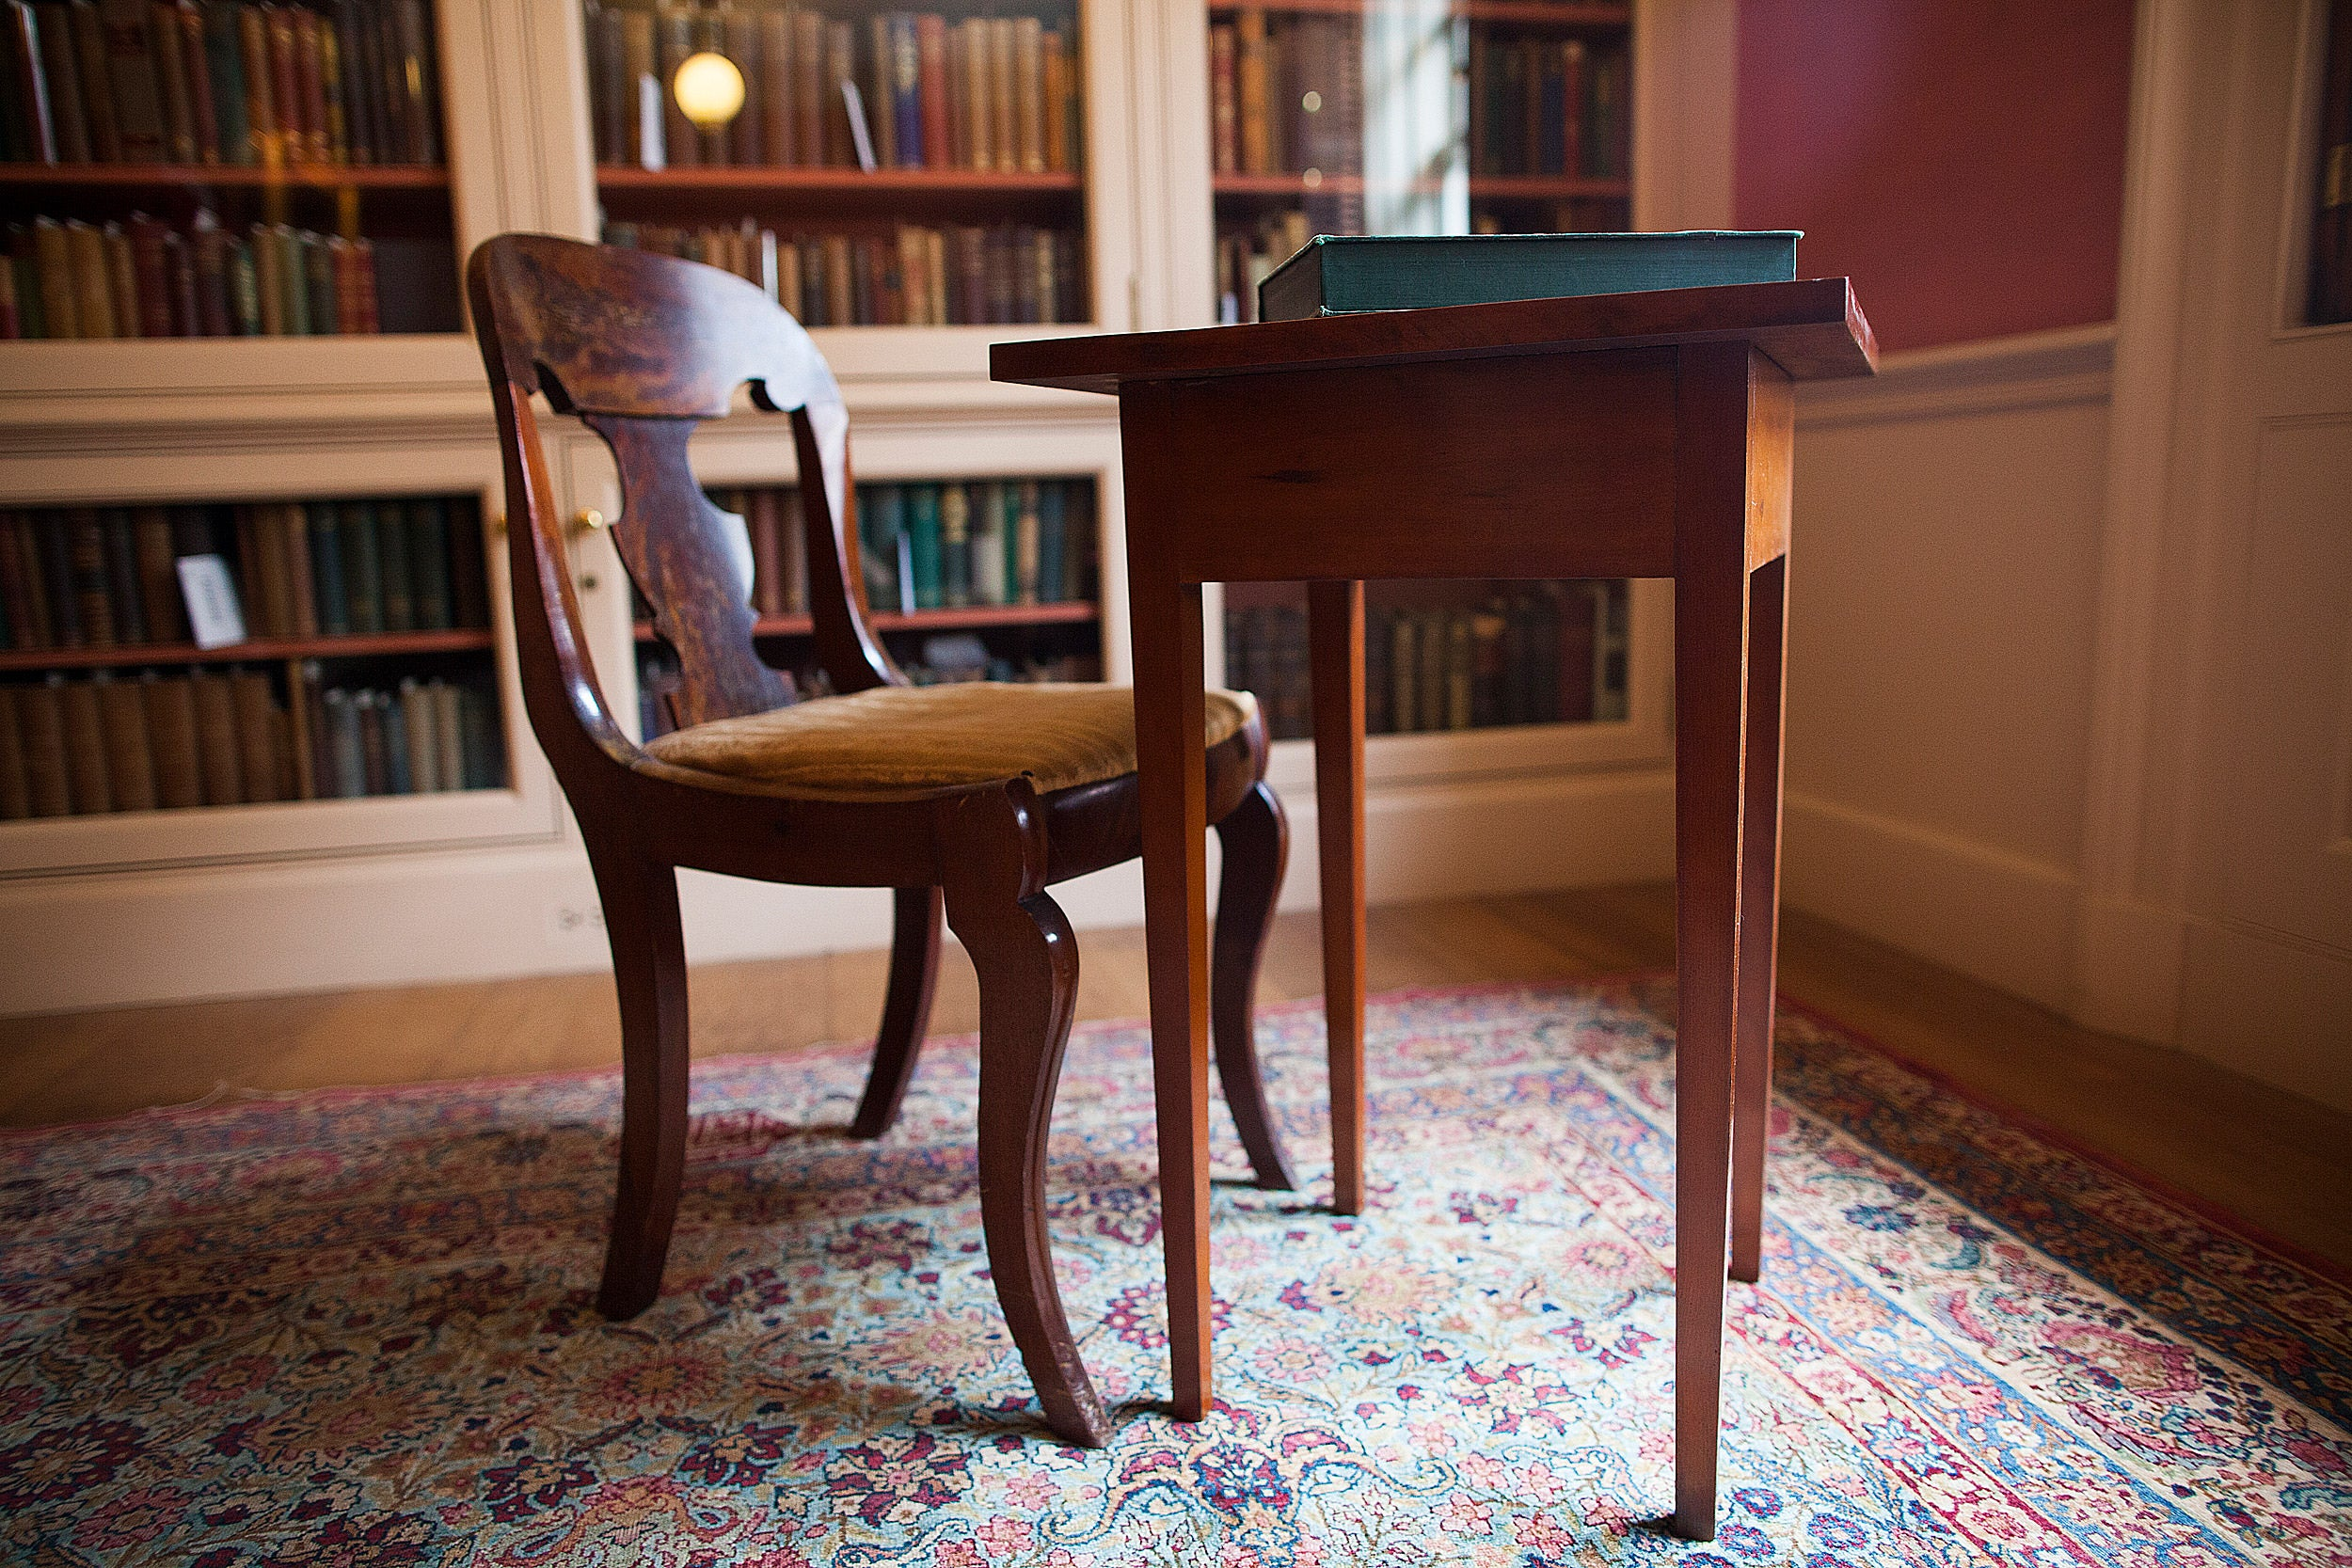 Emily Dickinson's chair and desk